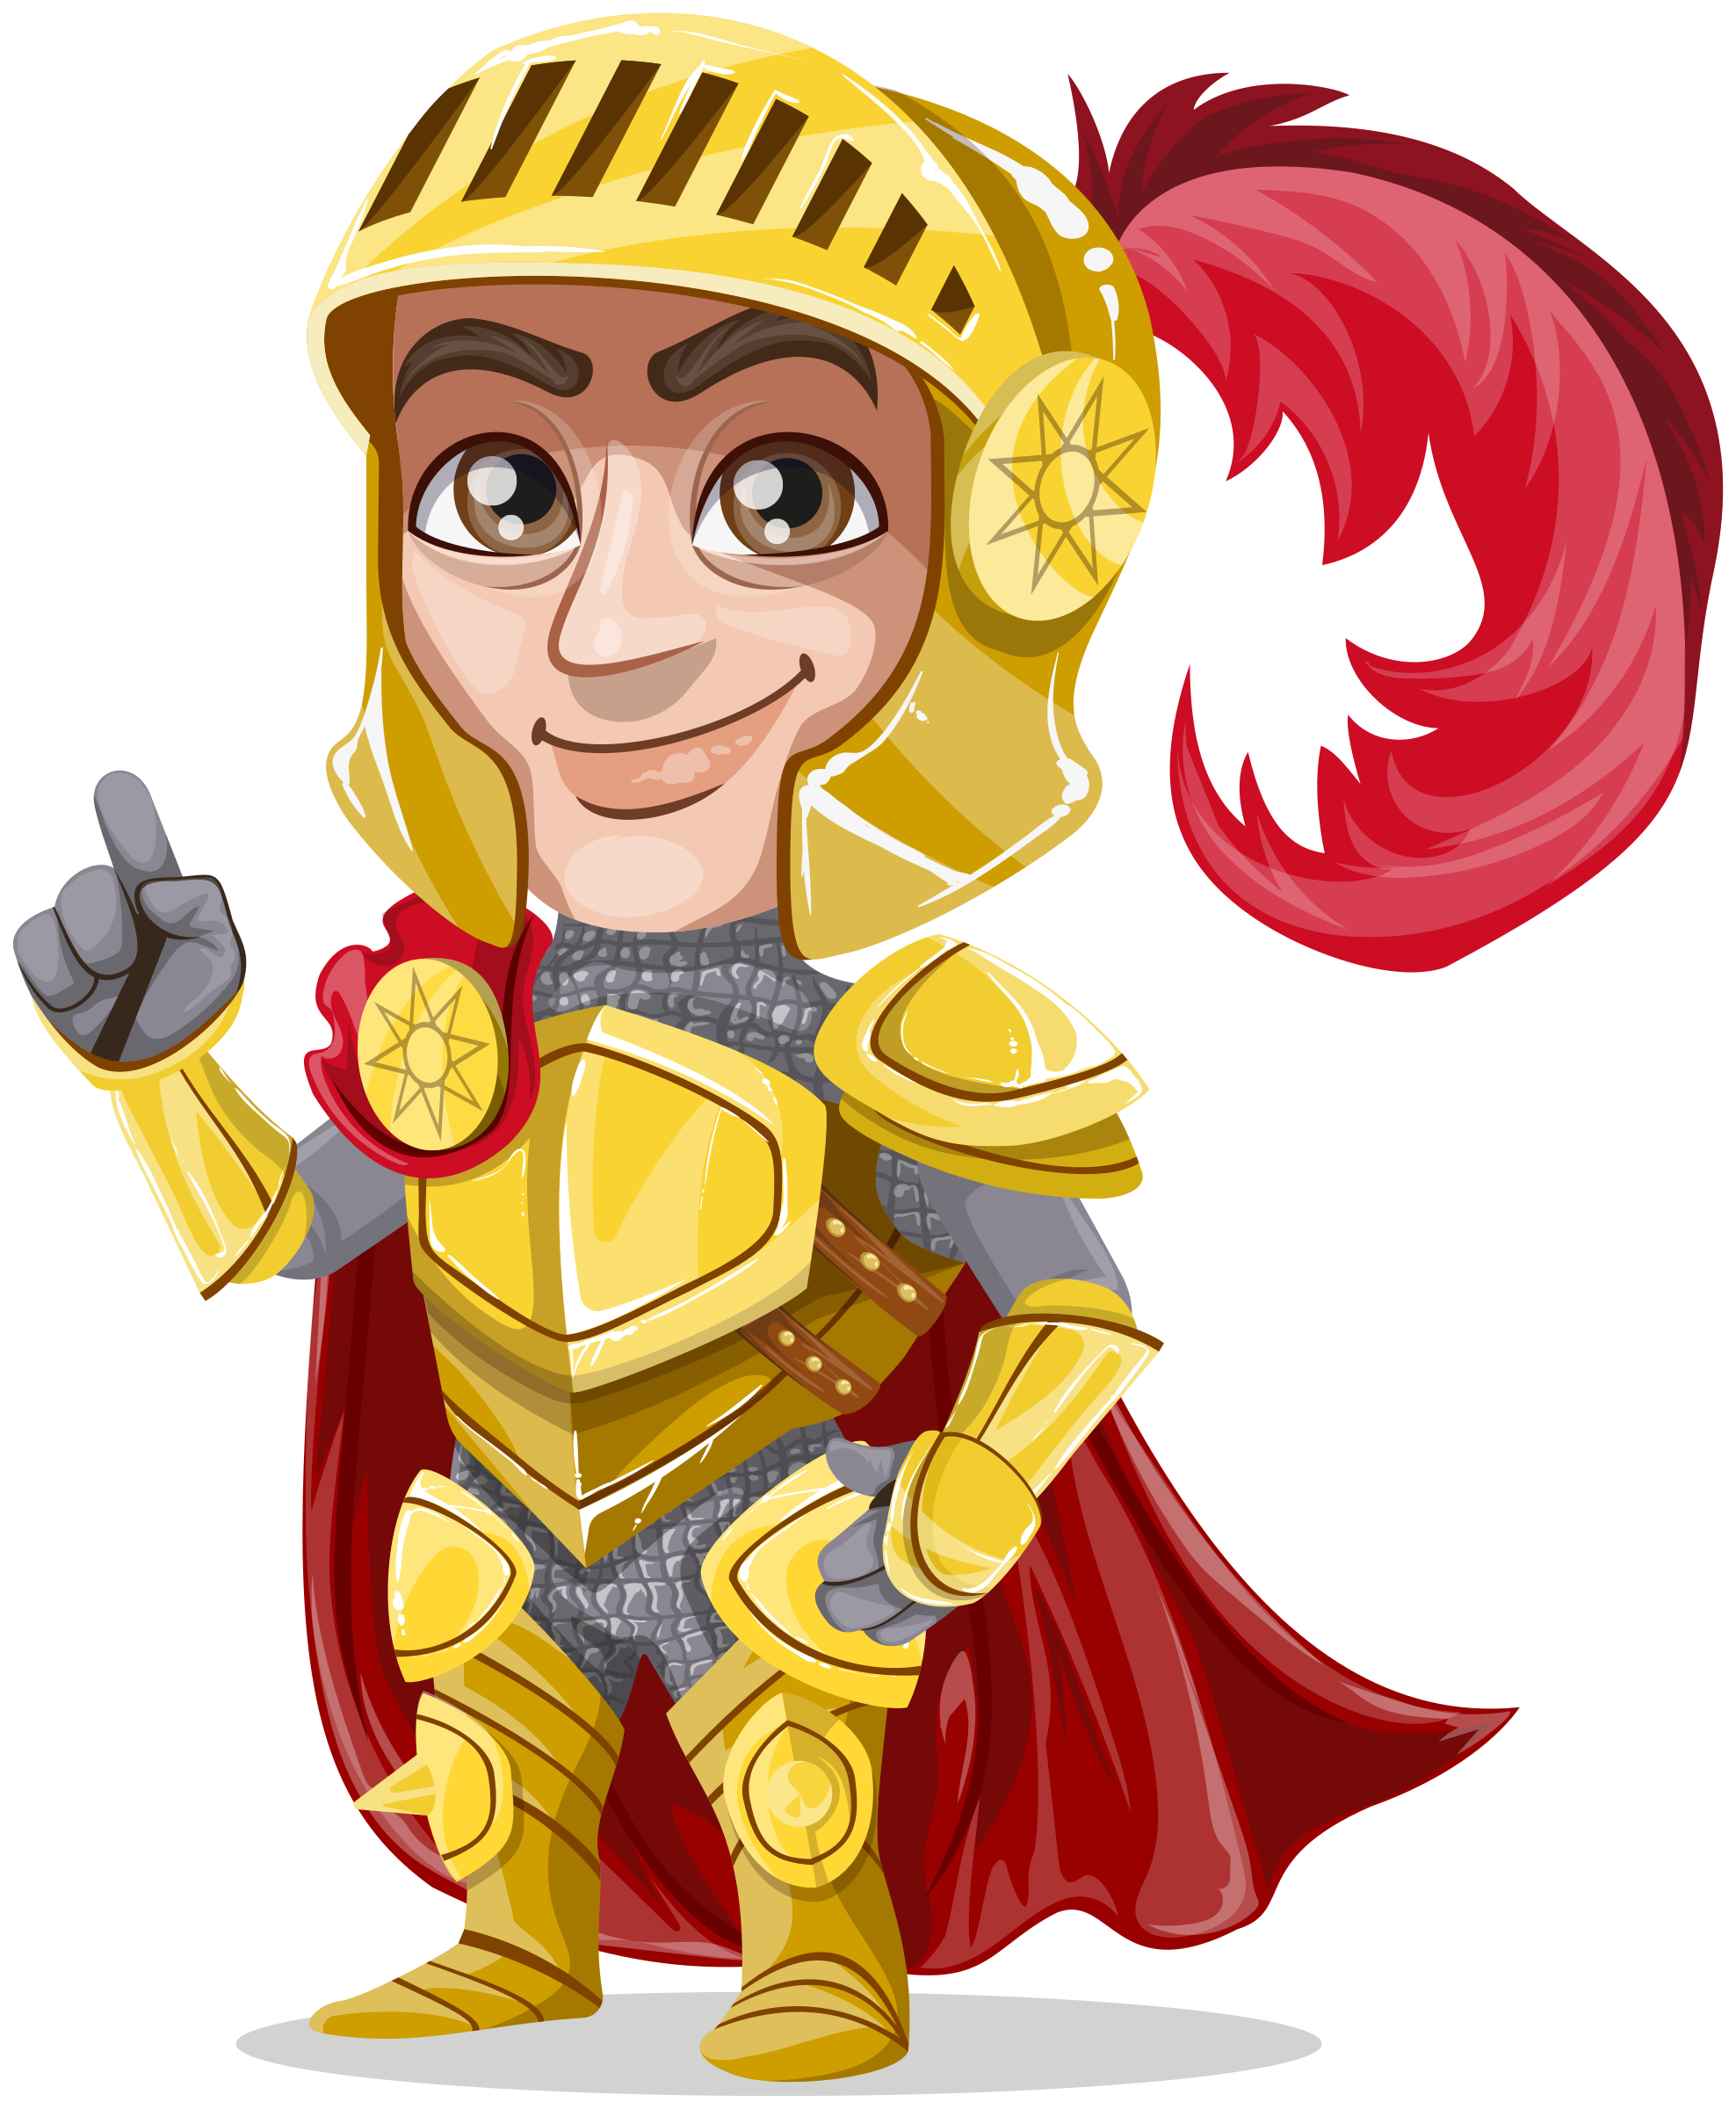 knight clipart prince